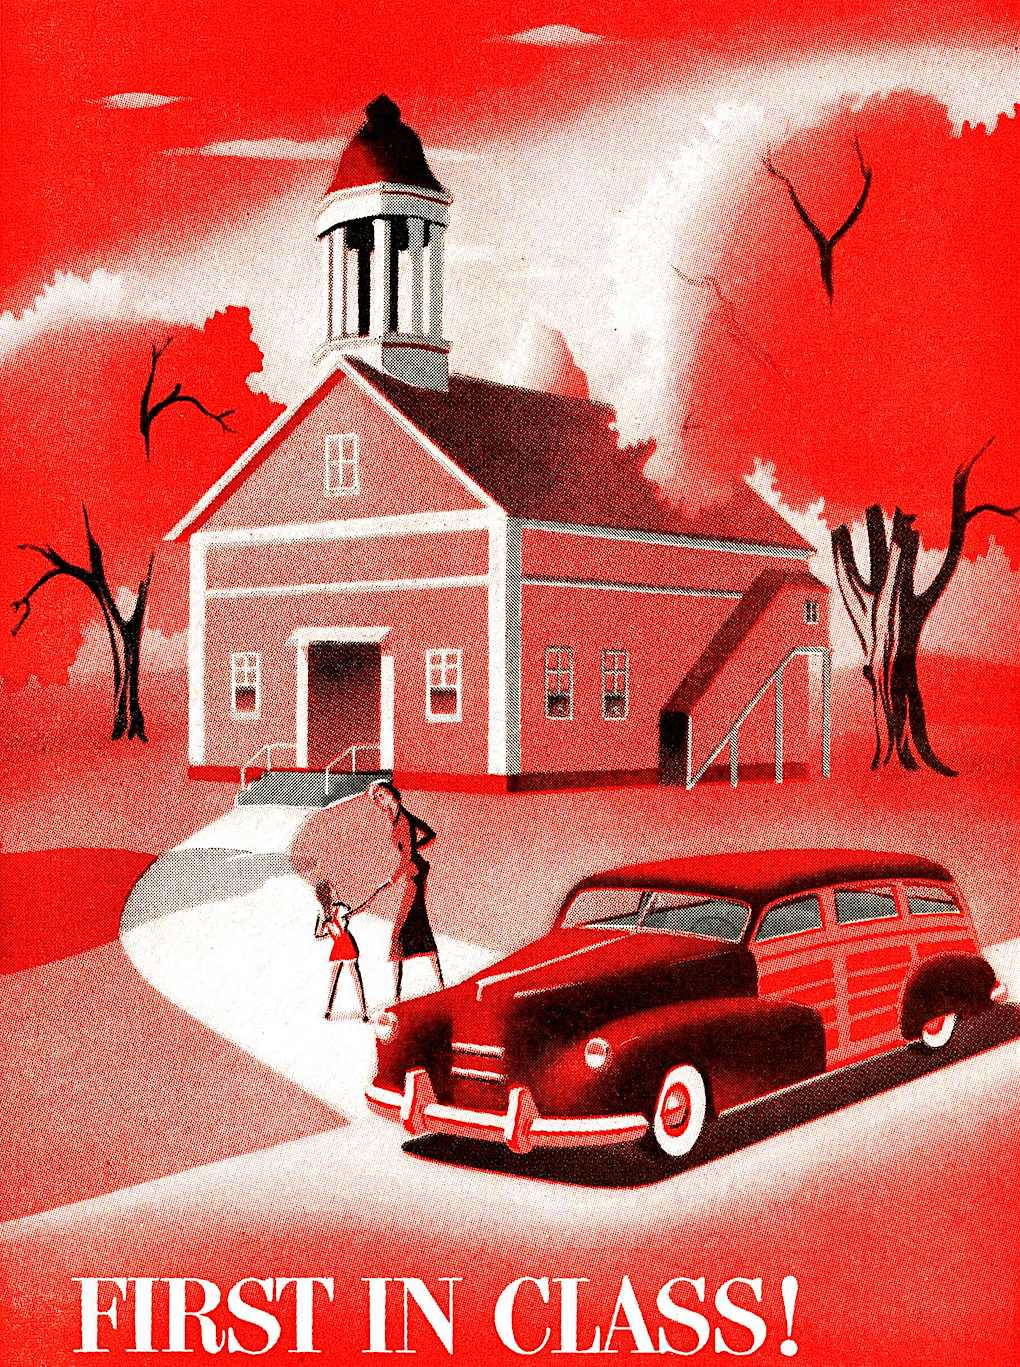 """a 1940s car illustration in red  """"First in Class!"""""""